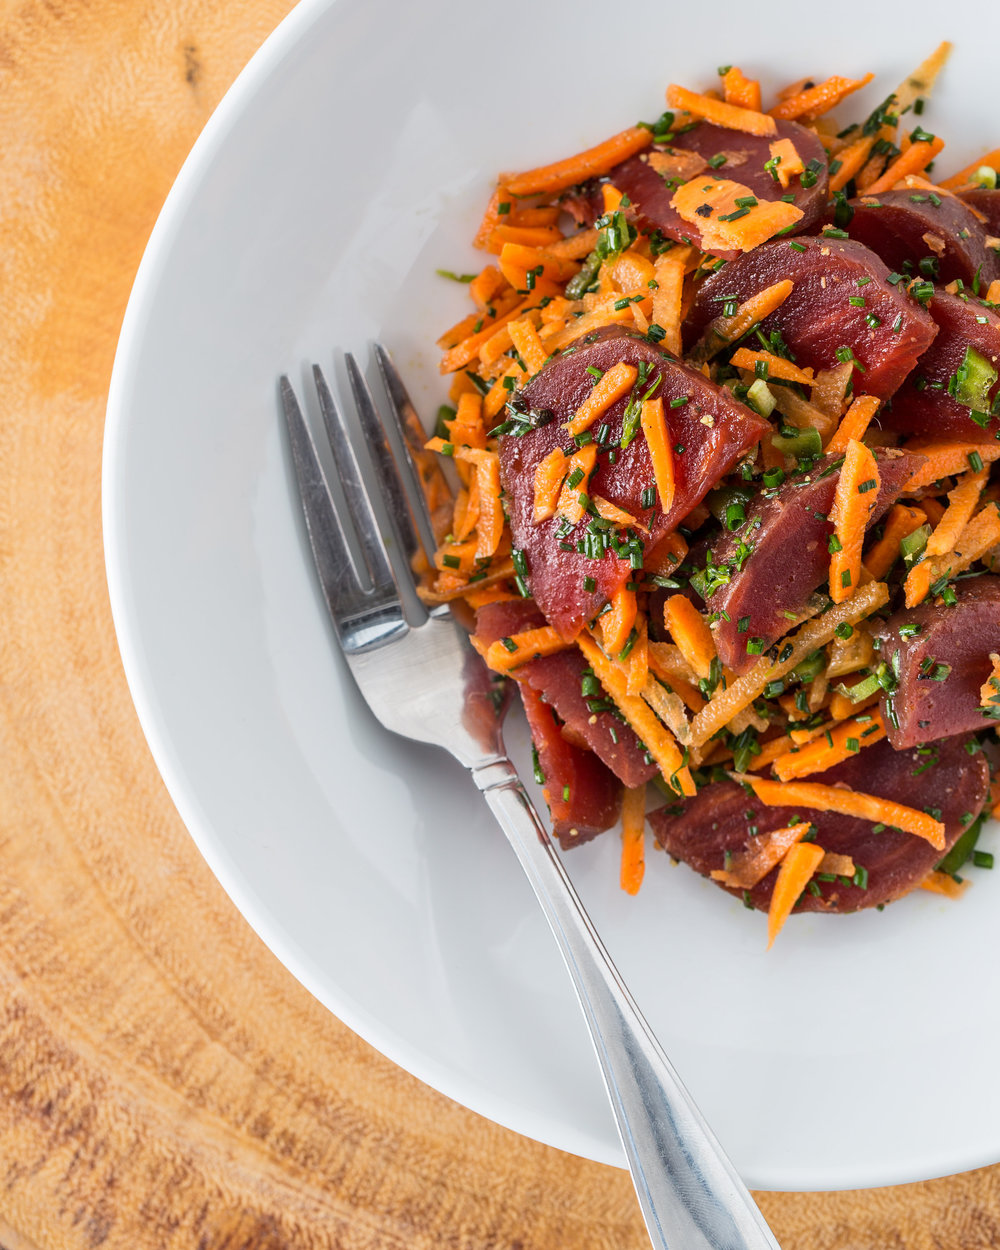 Zesty Beet & Carrot Salad